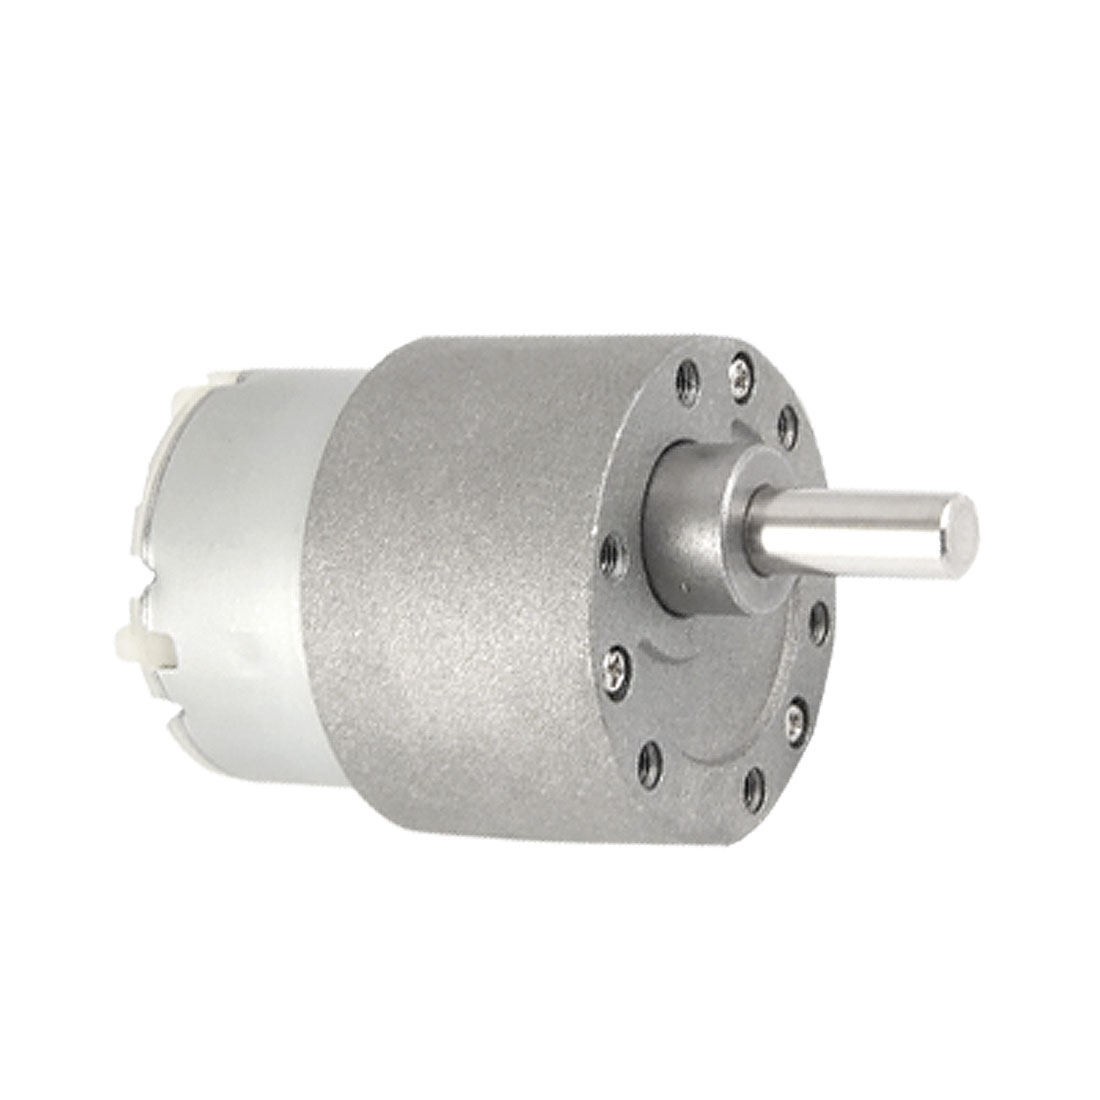 37mm Diameter Gearbox 60RPM 0.4A 12V DC Speed Reduce Geared Motor